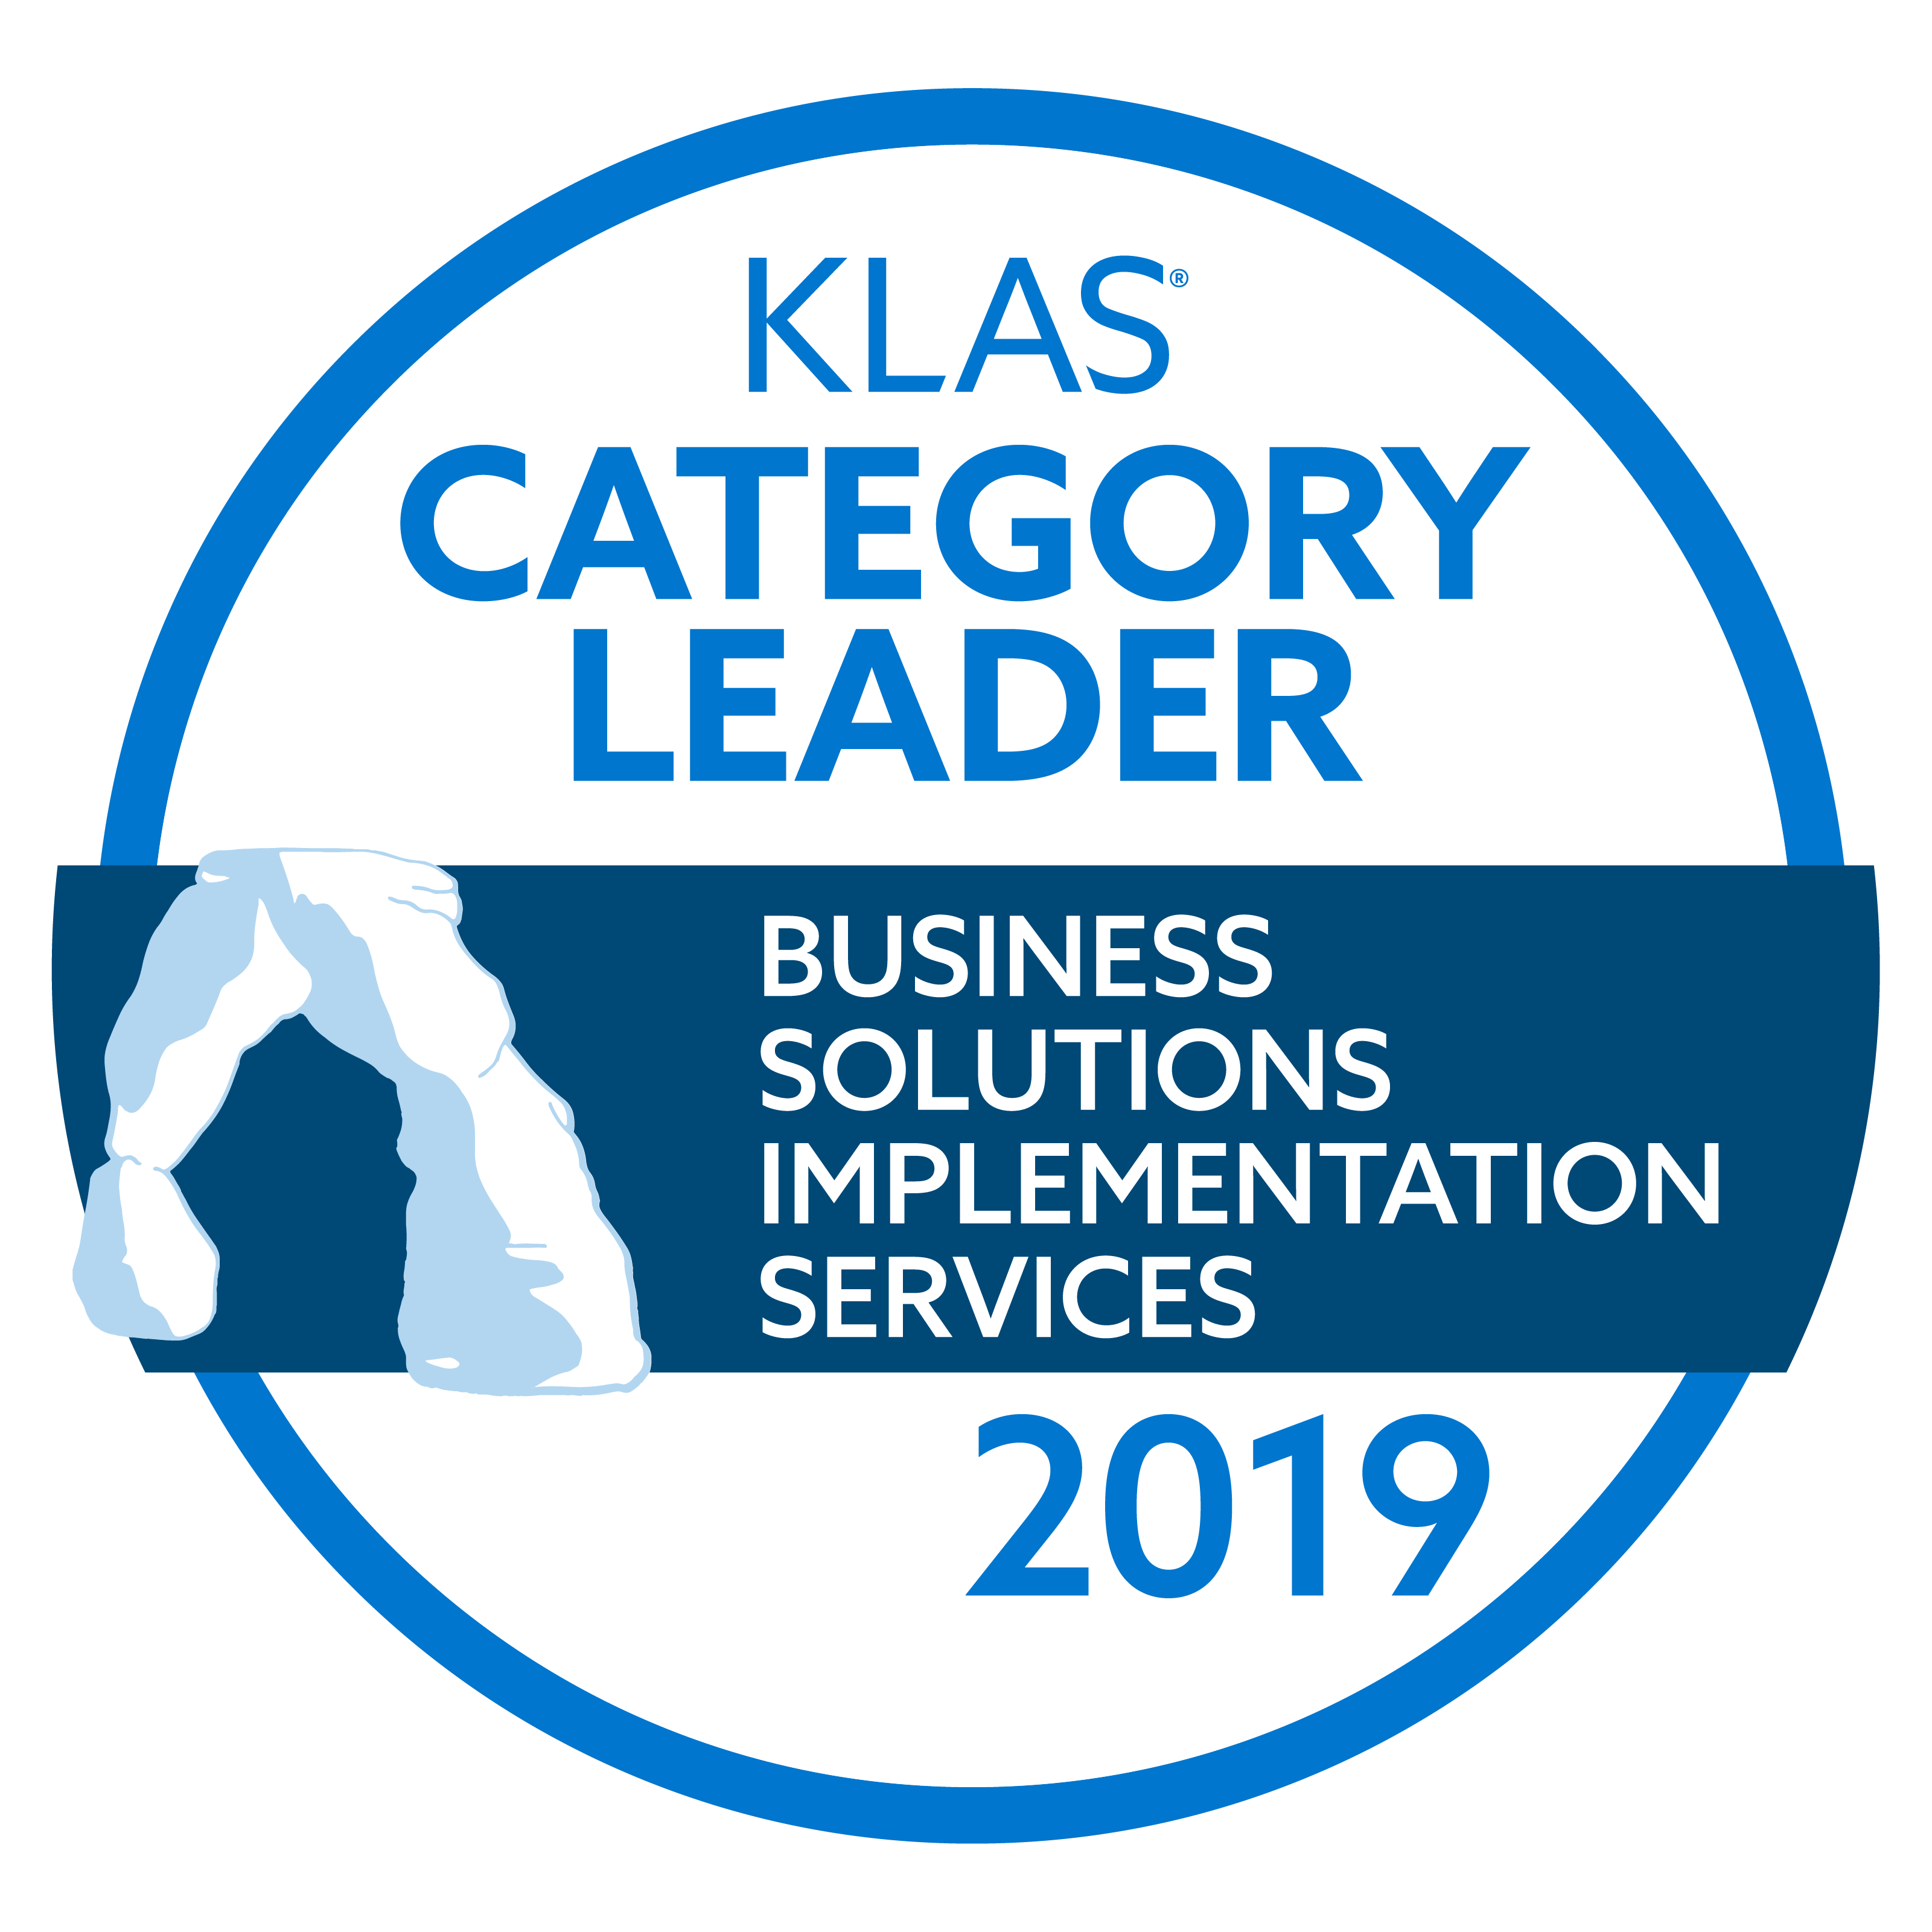 2019-category-leader-ROI-business-solutions-implementation-services